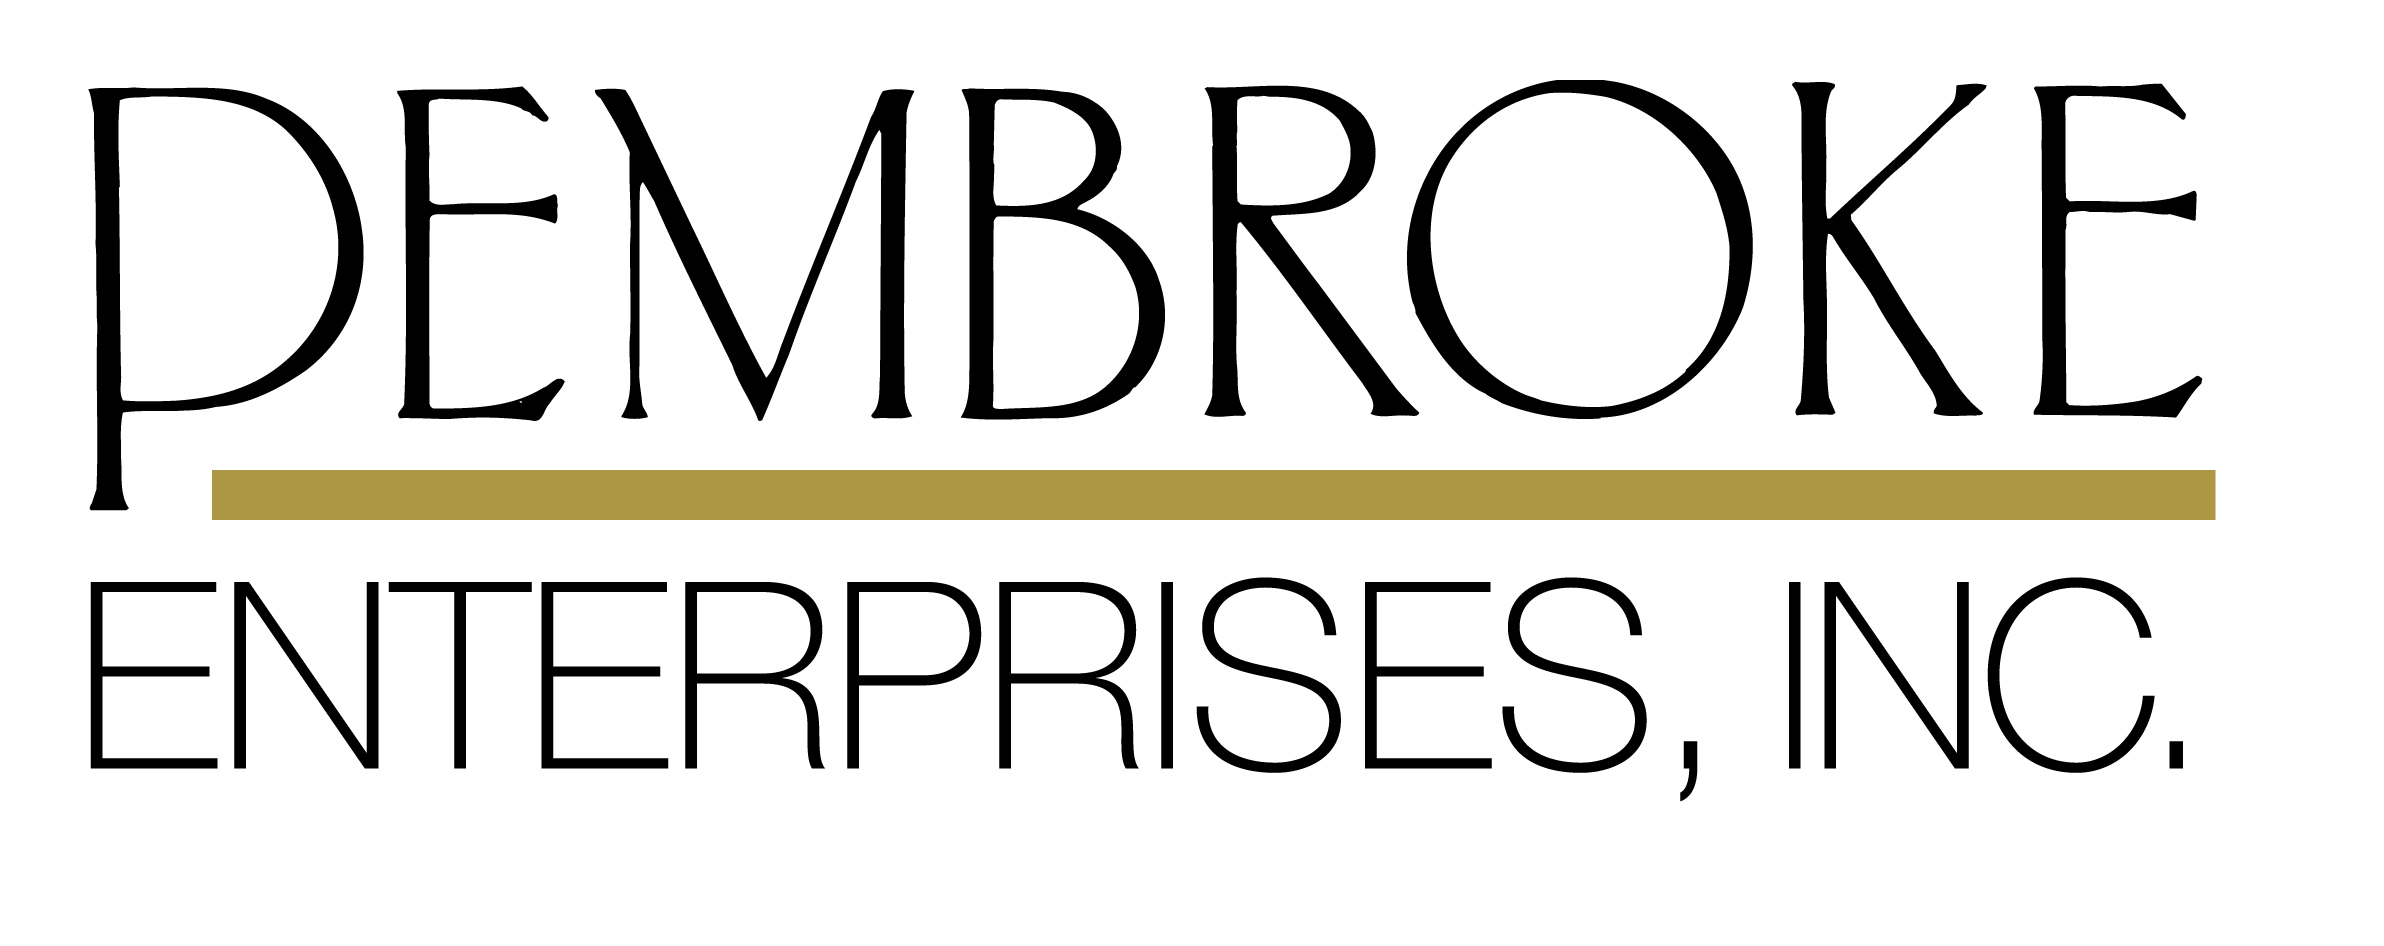 Pembroke Enterprises _Supporting